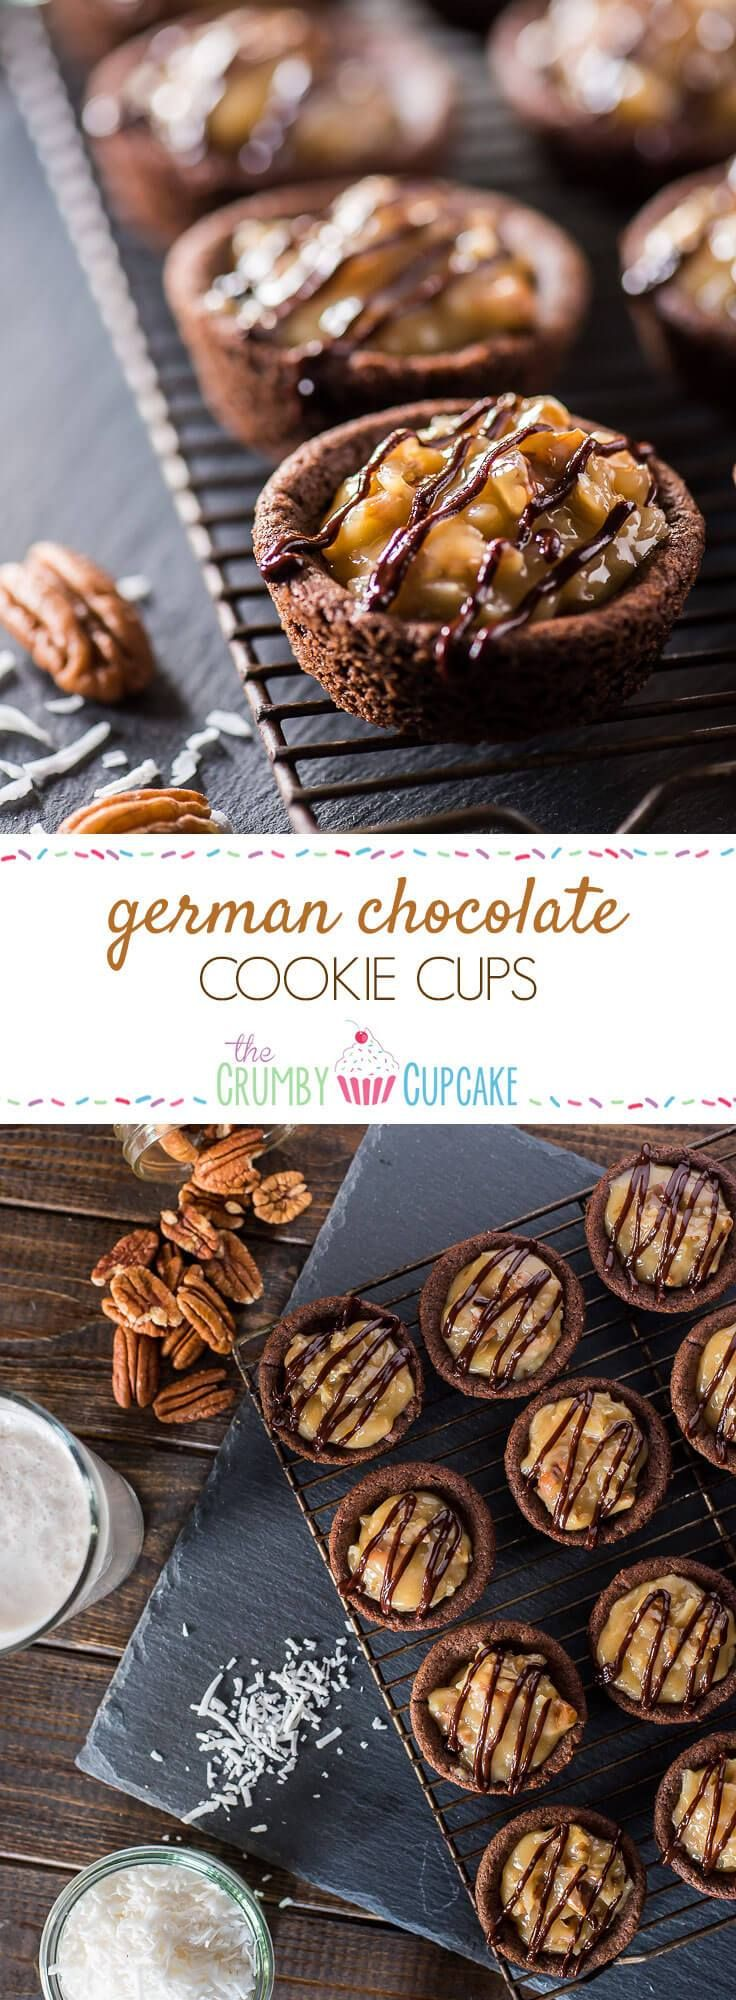 Best 20+ German chocolate cookies ideas on Pinterest | German ...